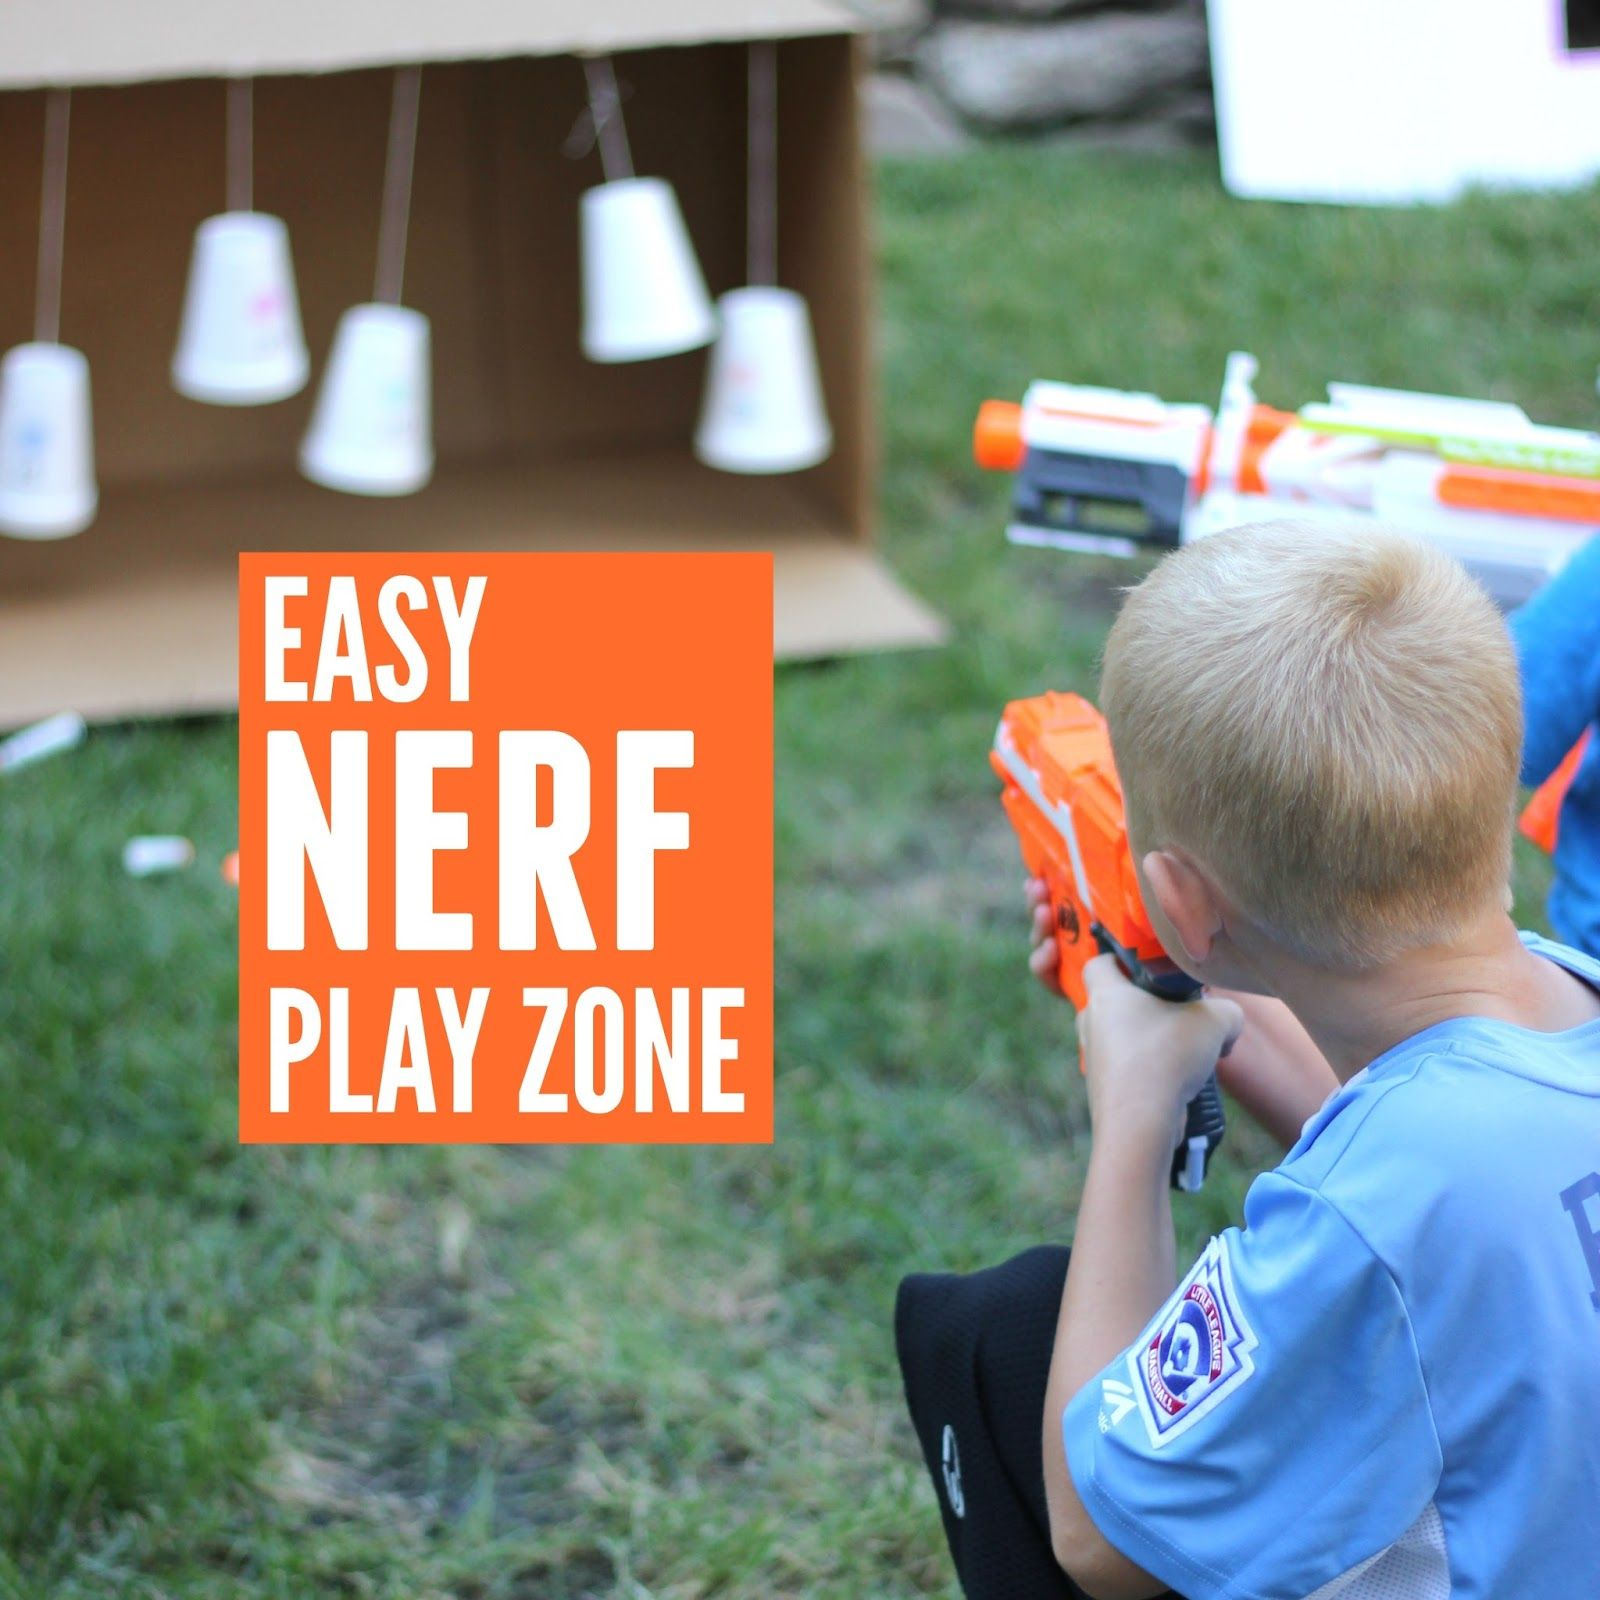 Top 5 Best Nerf Guns for Kids | 2017 Reviews